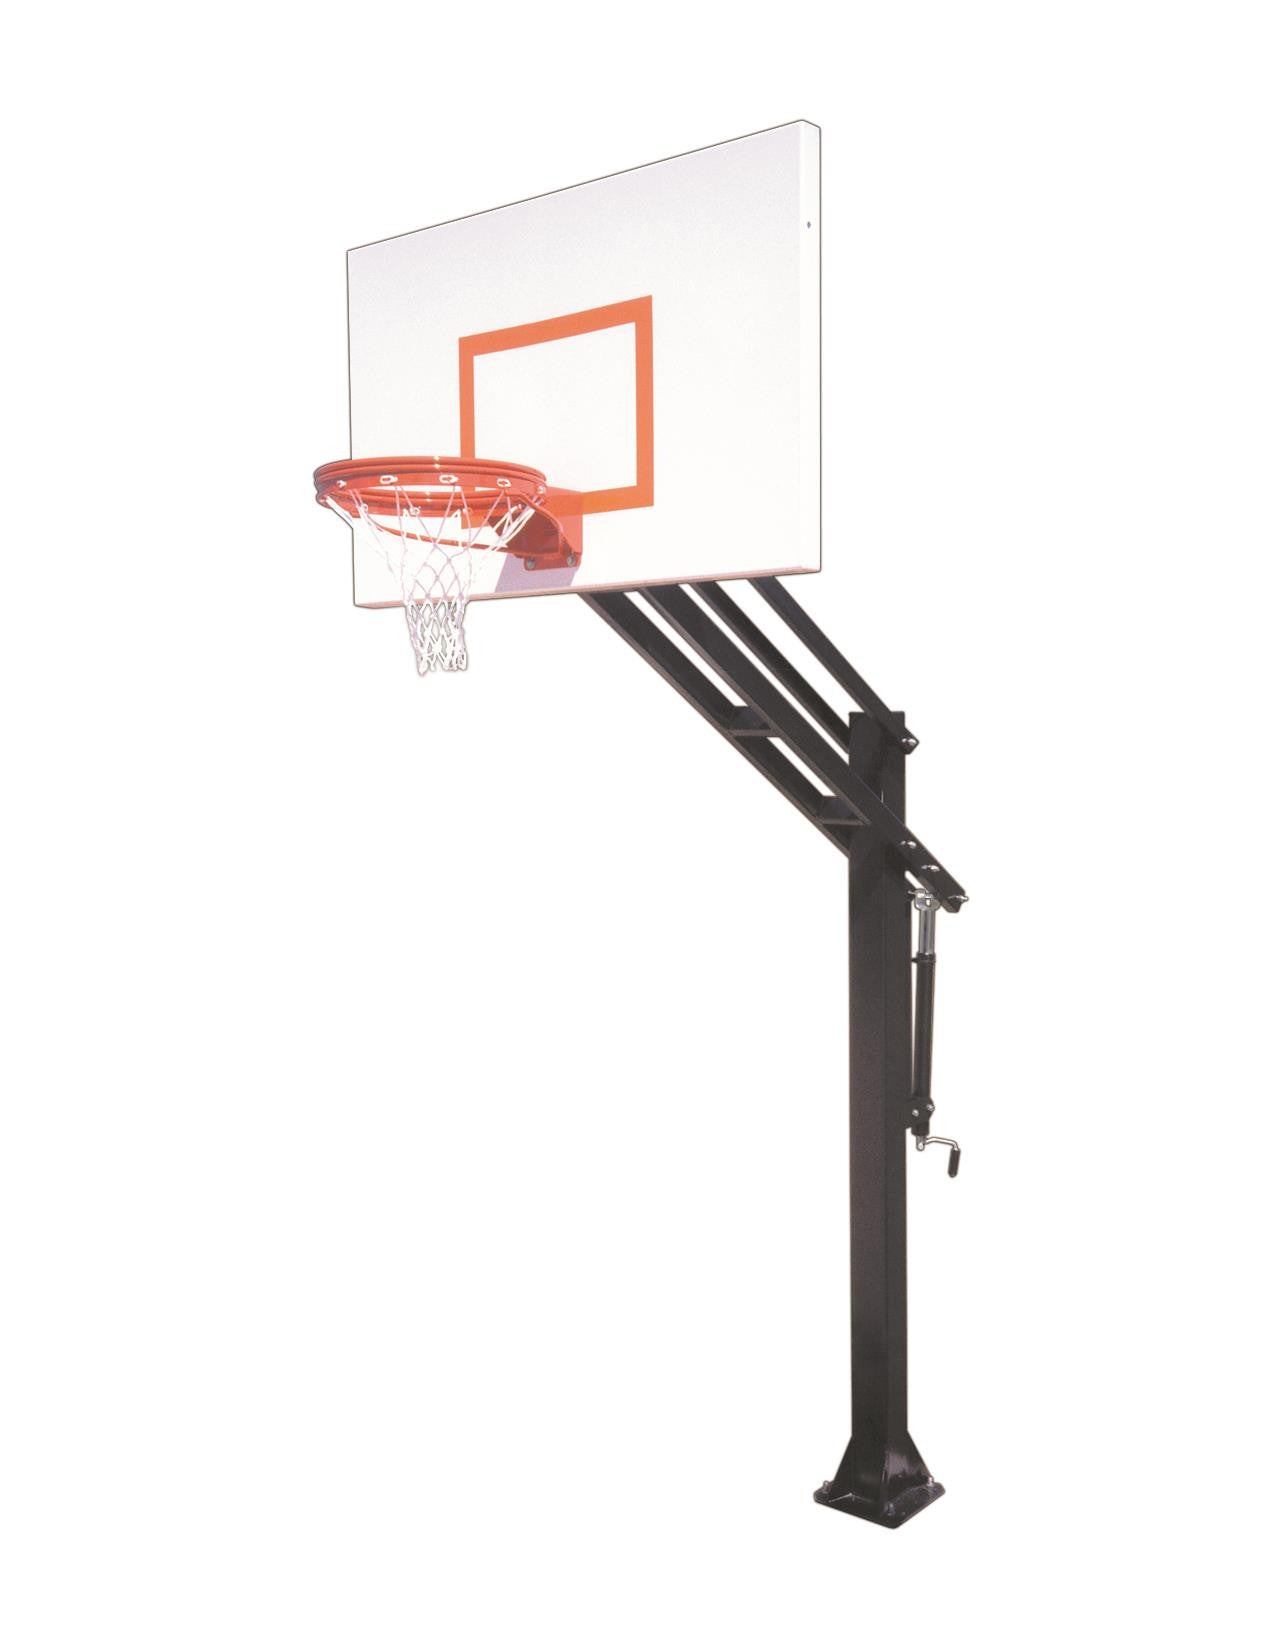 First Team Force Endura In Ground Outdoor Adjustable Basketball Hoop 60 inch Aluminum